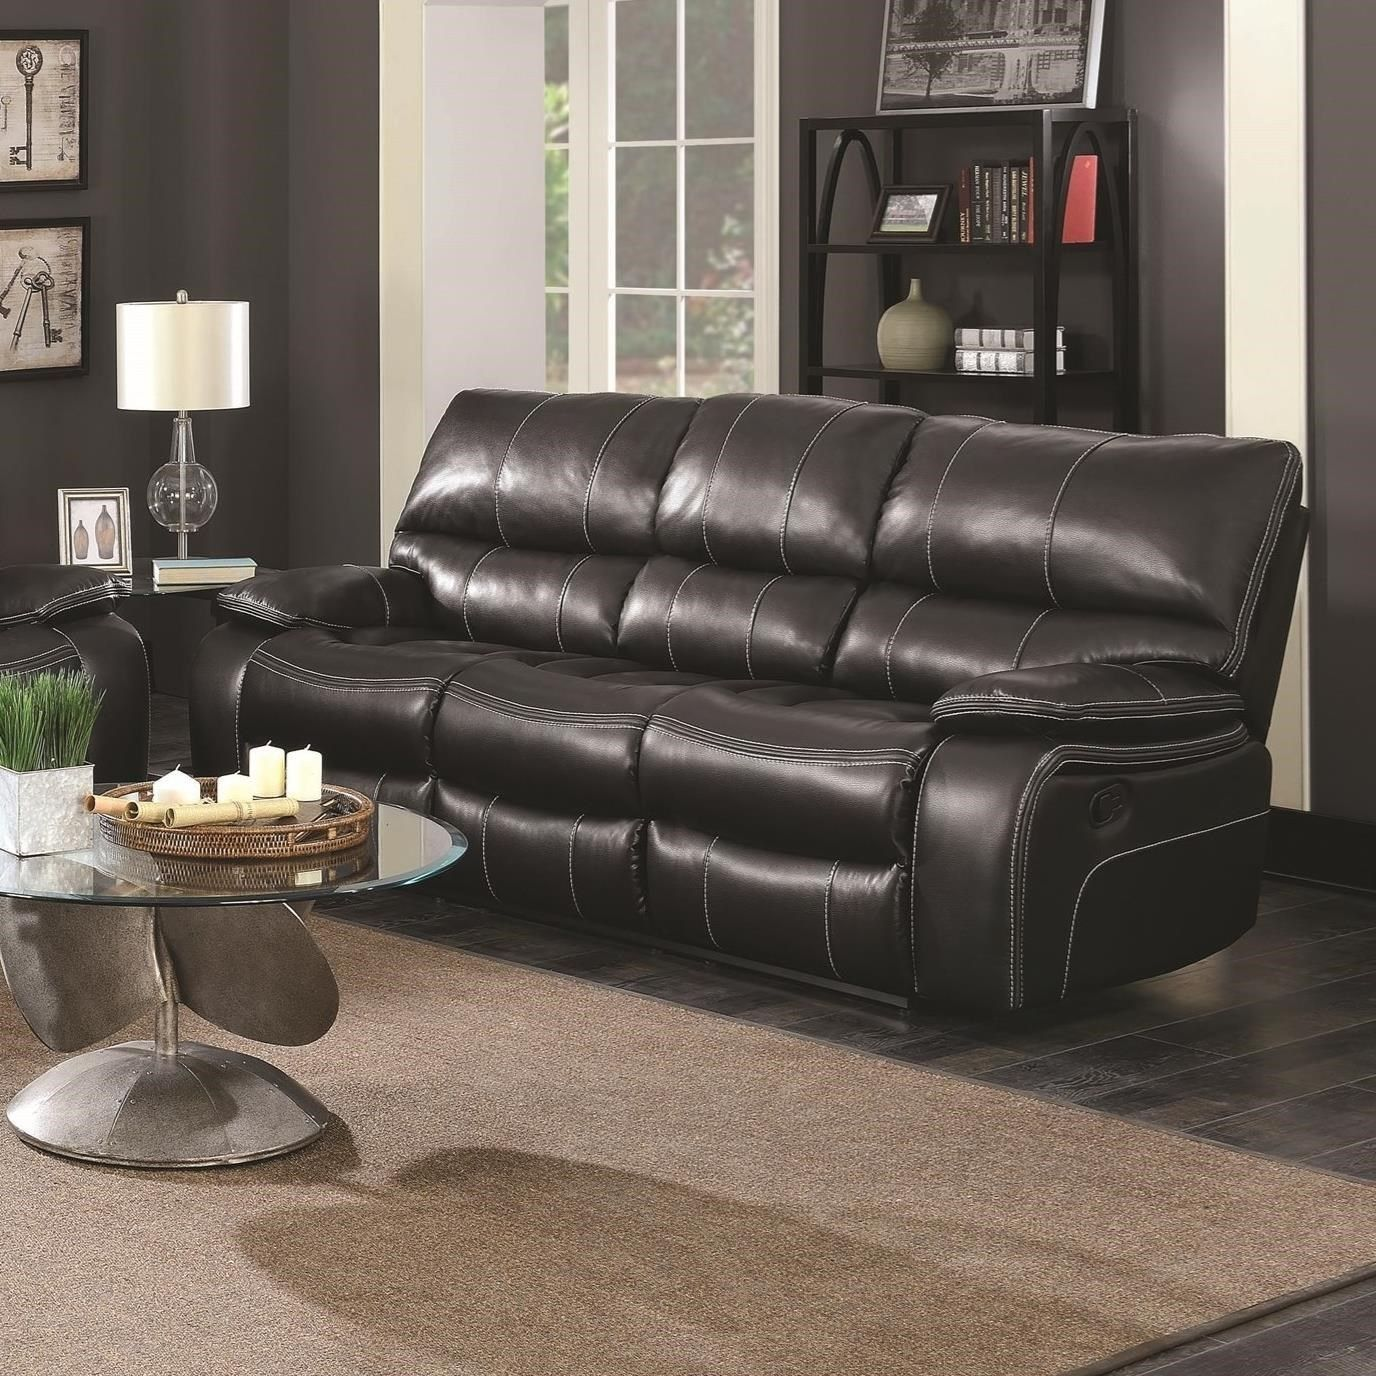 Willemse Motion Sofa With Drop Down Table By Coaster At A1 Furniture Mattress Drop Down Table Sofa Offers Reclining Sofa